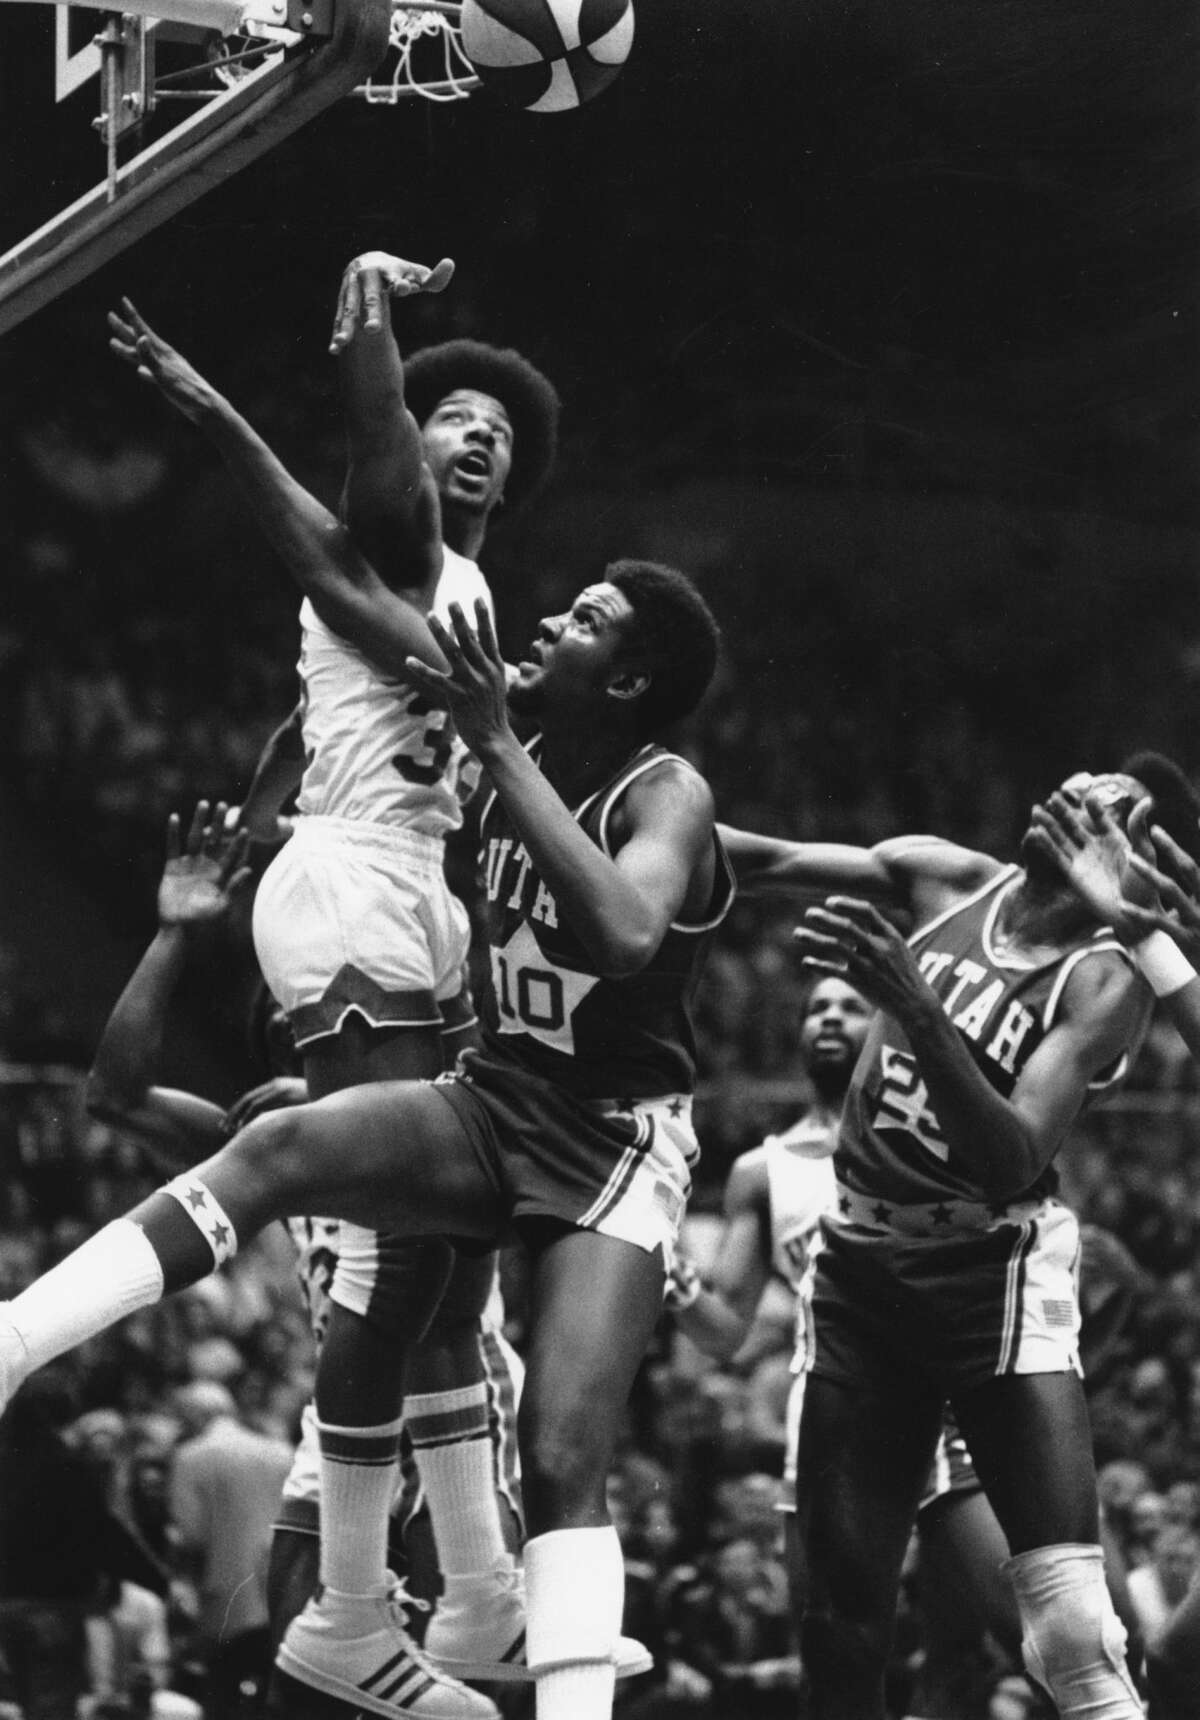 Julius Erving (32), of the New York Nets, is seen jumping high for a block during the ABA Championship Series against the Utah Stars at the Nassau Coliseum in Uniondale, N.Y., on May 4, 1974. Trying for the rebound for the Stars is Bruce Seals (10). (AP Photo/Richard Drew)